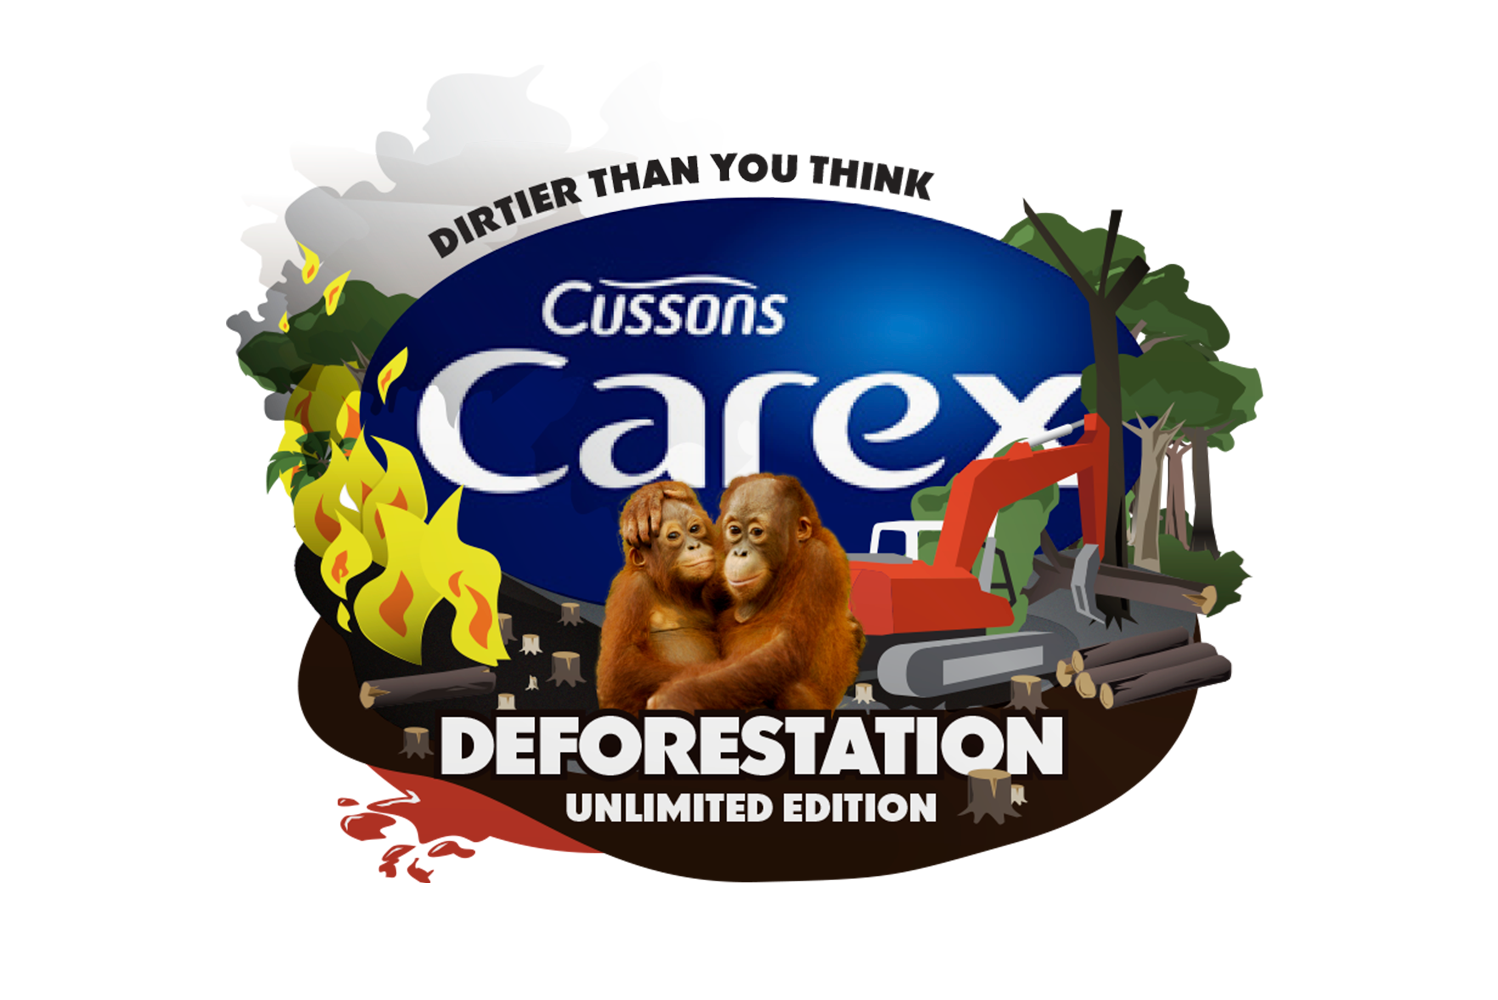 Greenpeace_Forests_Carex_Campaign_Logo.png